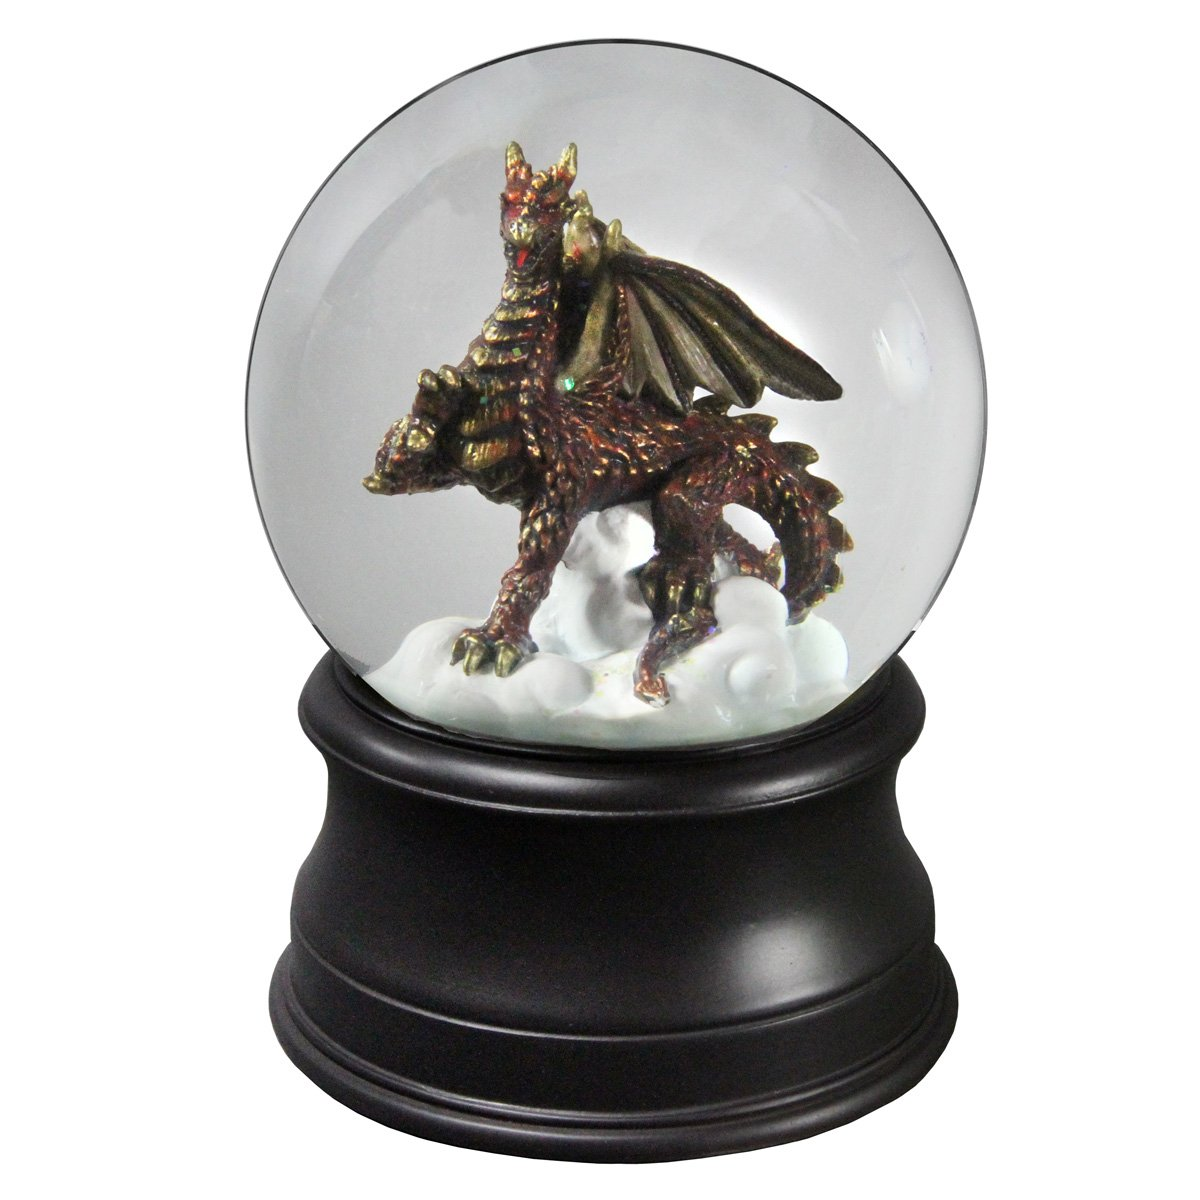 The San Francisco Music Box Company Golden Dragon Collectible Water Globe from